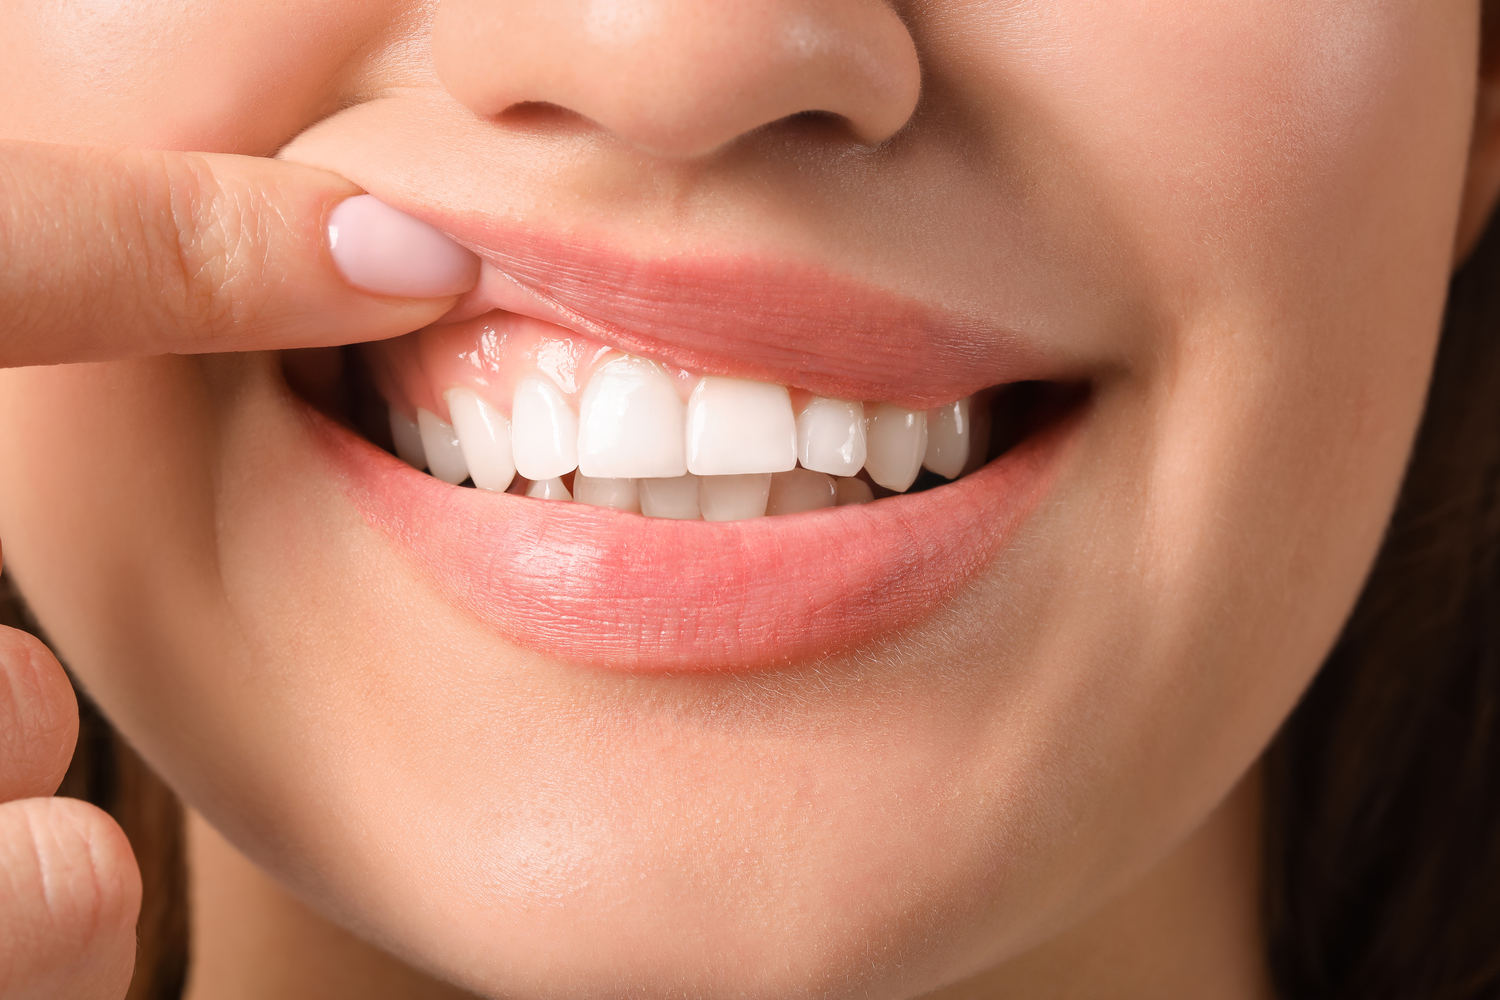 September is gum care month: Tips for taking care of your gums